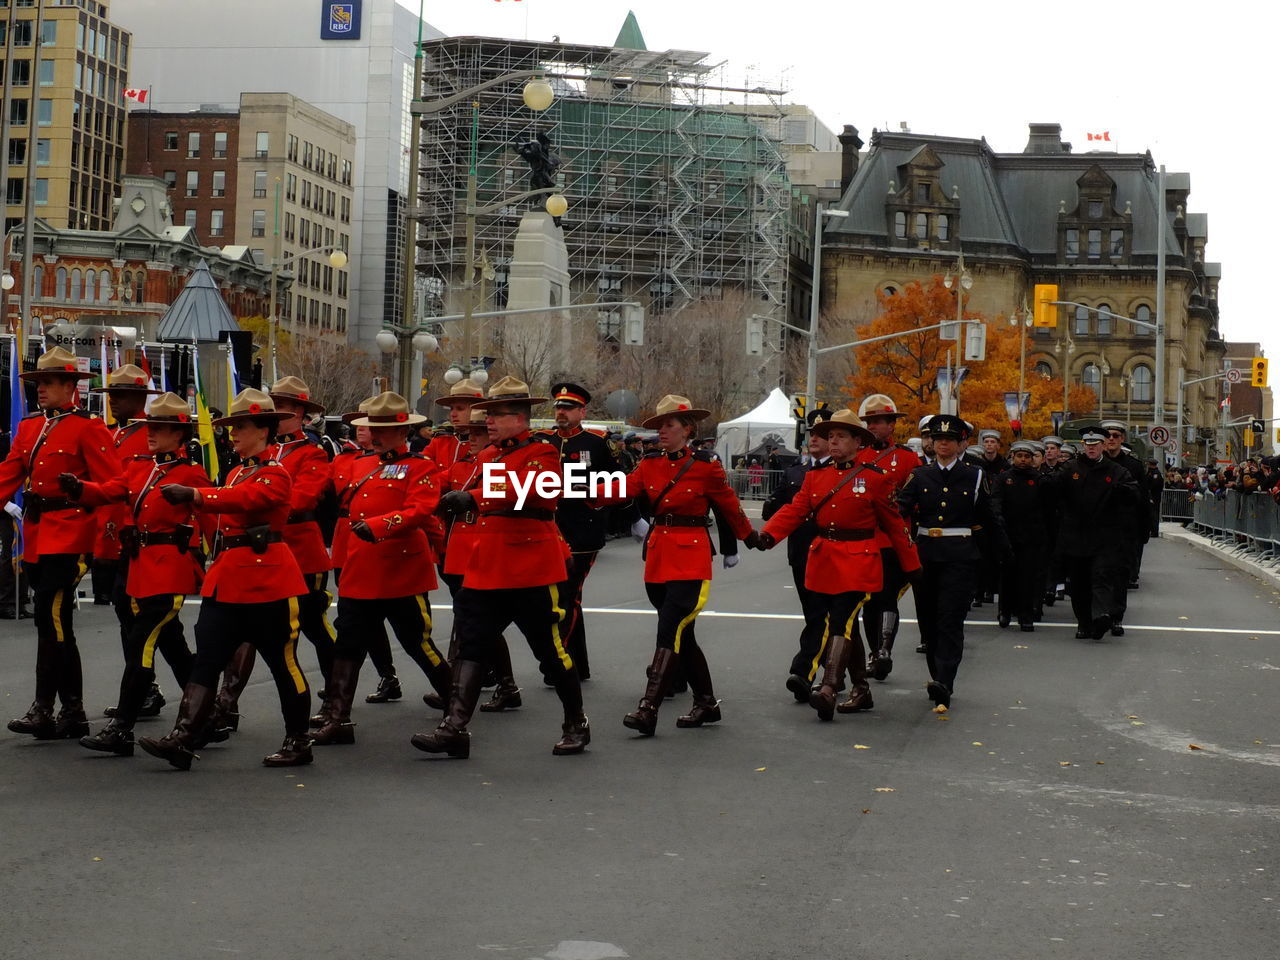 large group of people, building exterior, uniform, built structure, architecture, marching, men, real people, parade, rear view, military uniform, celebration, day, city, togetherness, military parade, outdoors, adult, people